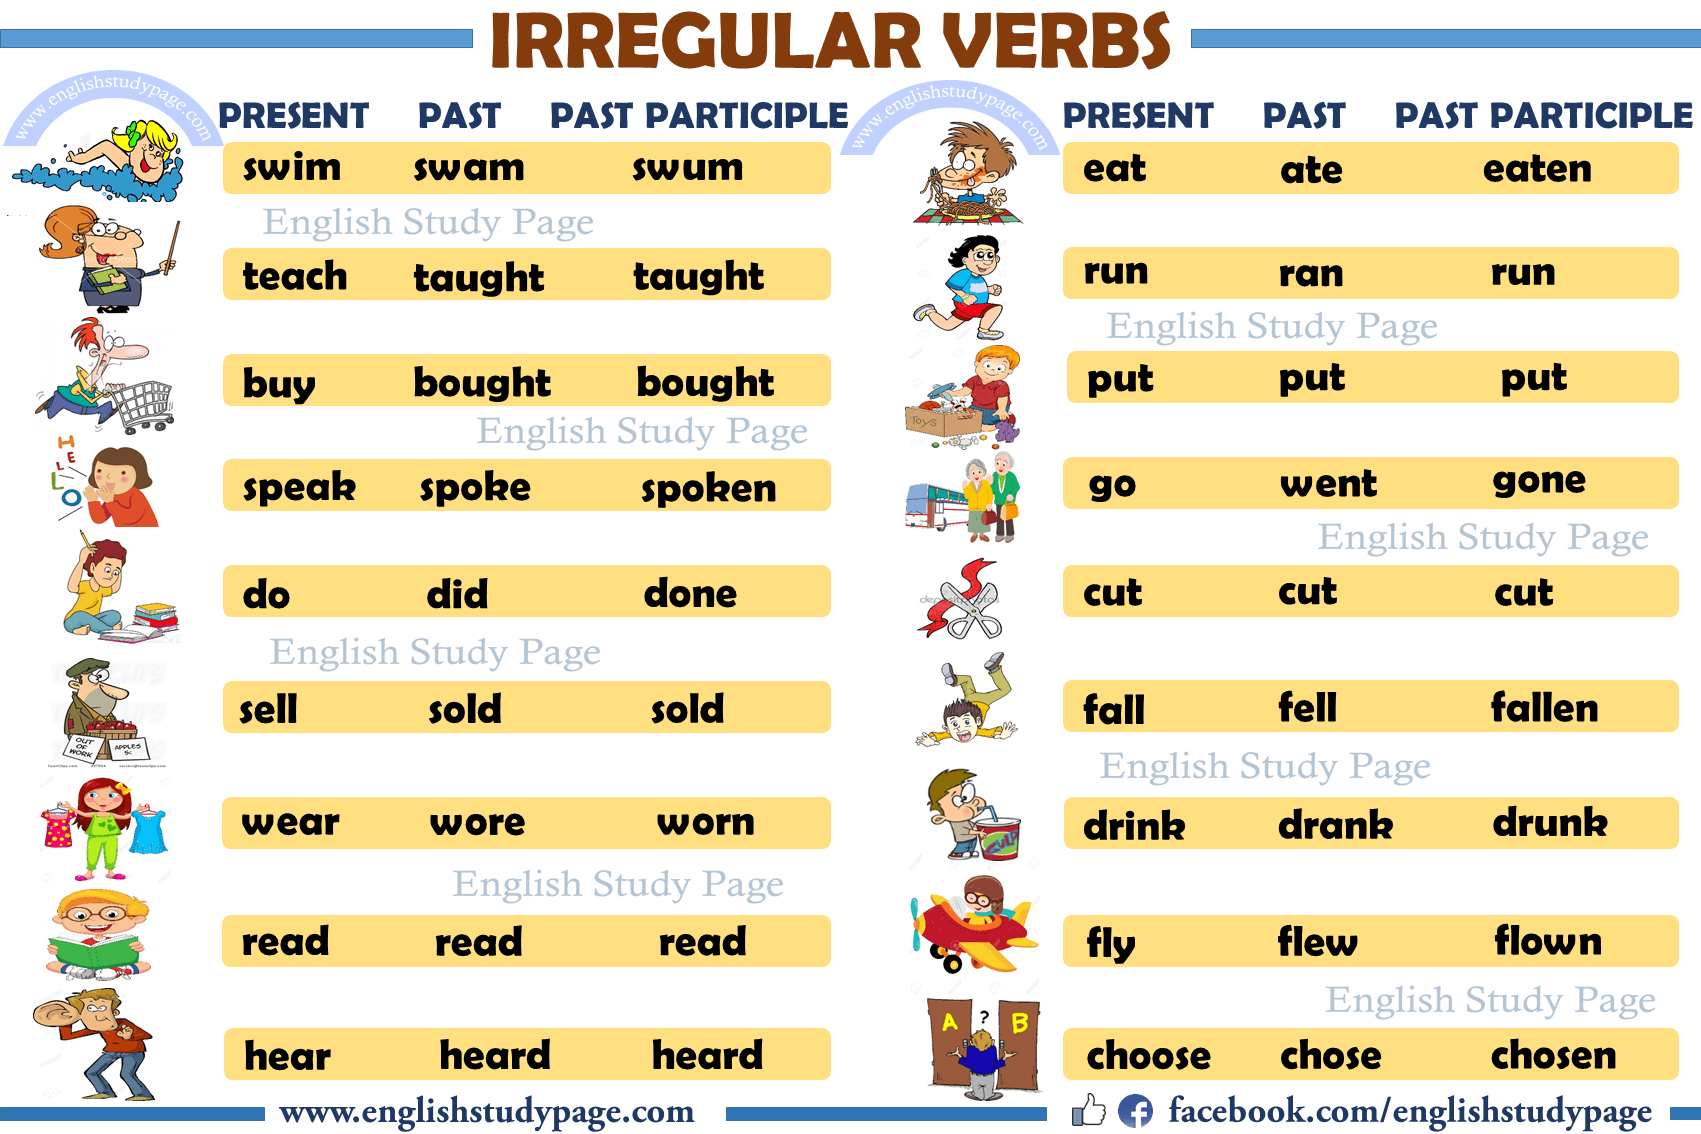 Is rencontrer an irregular verb